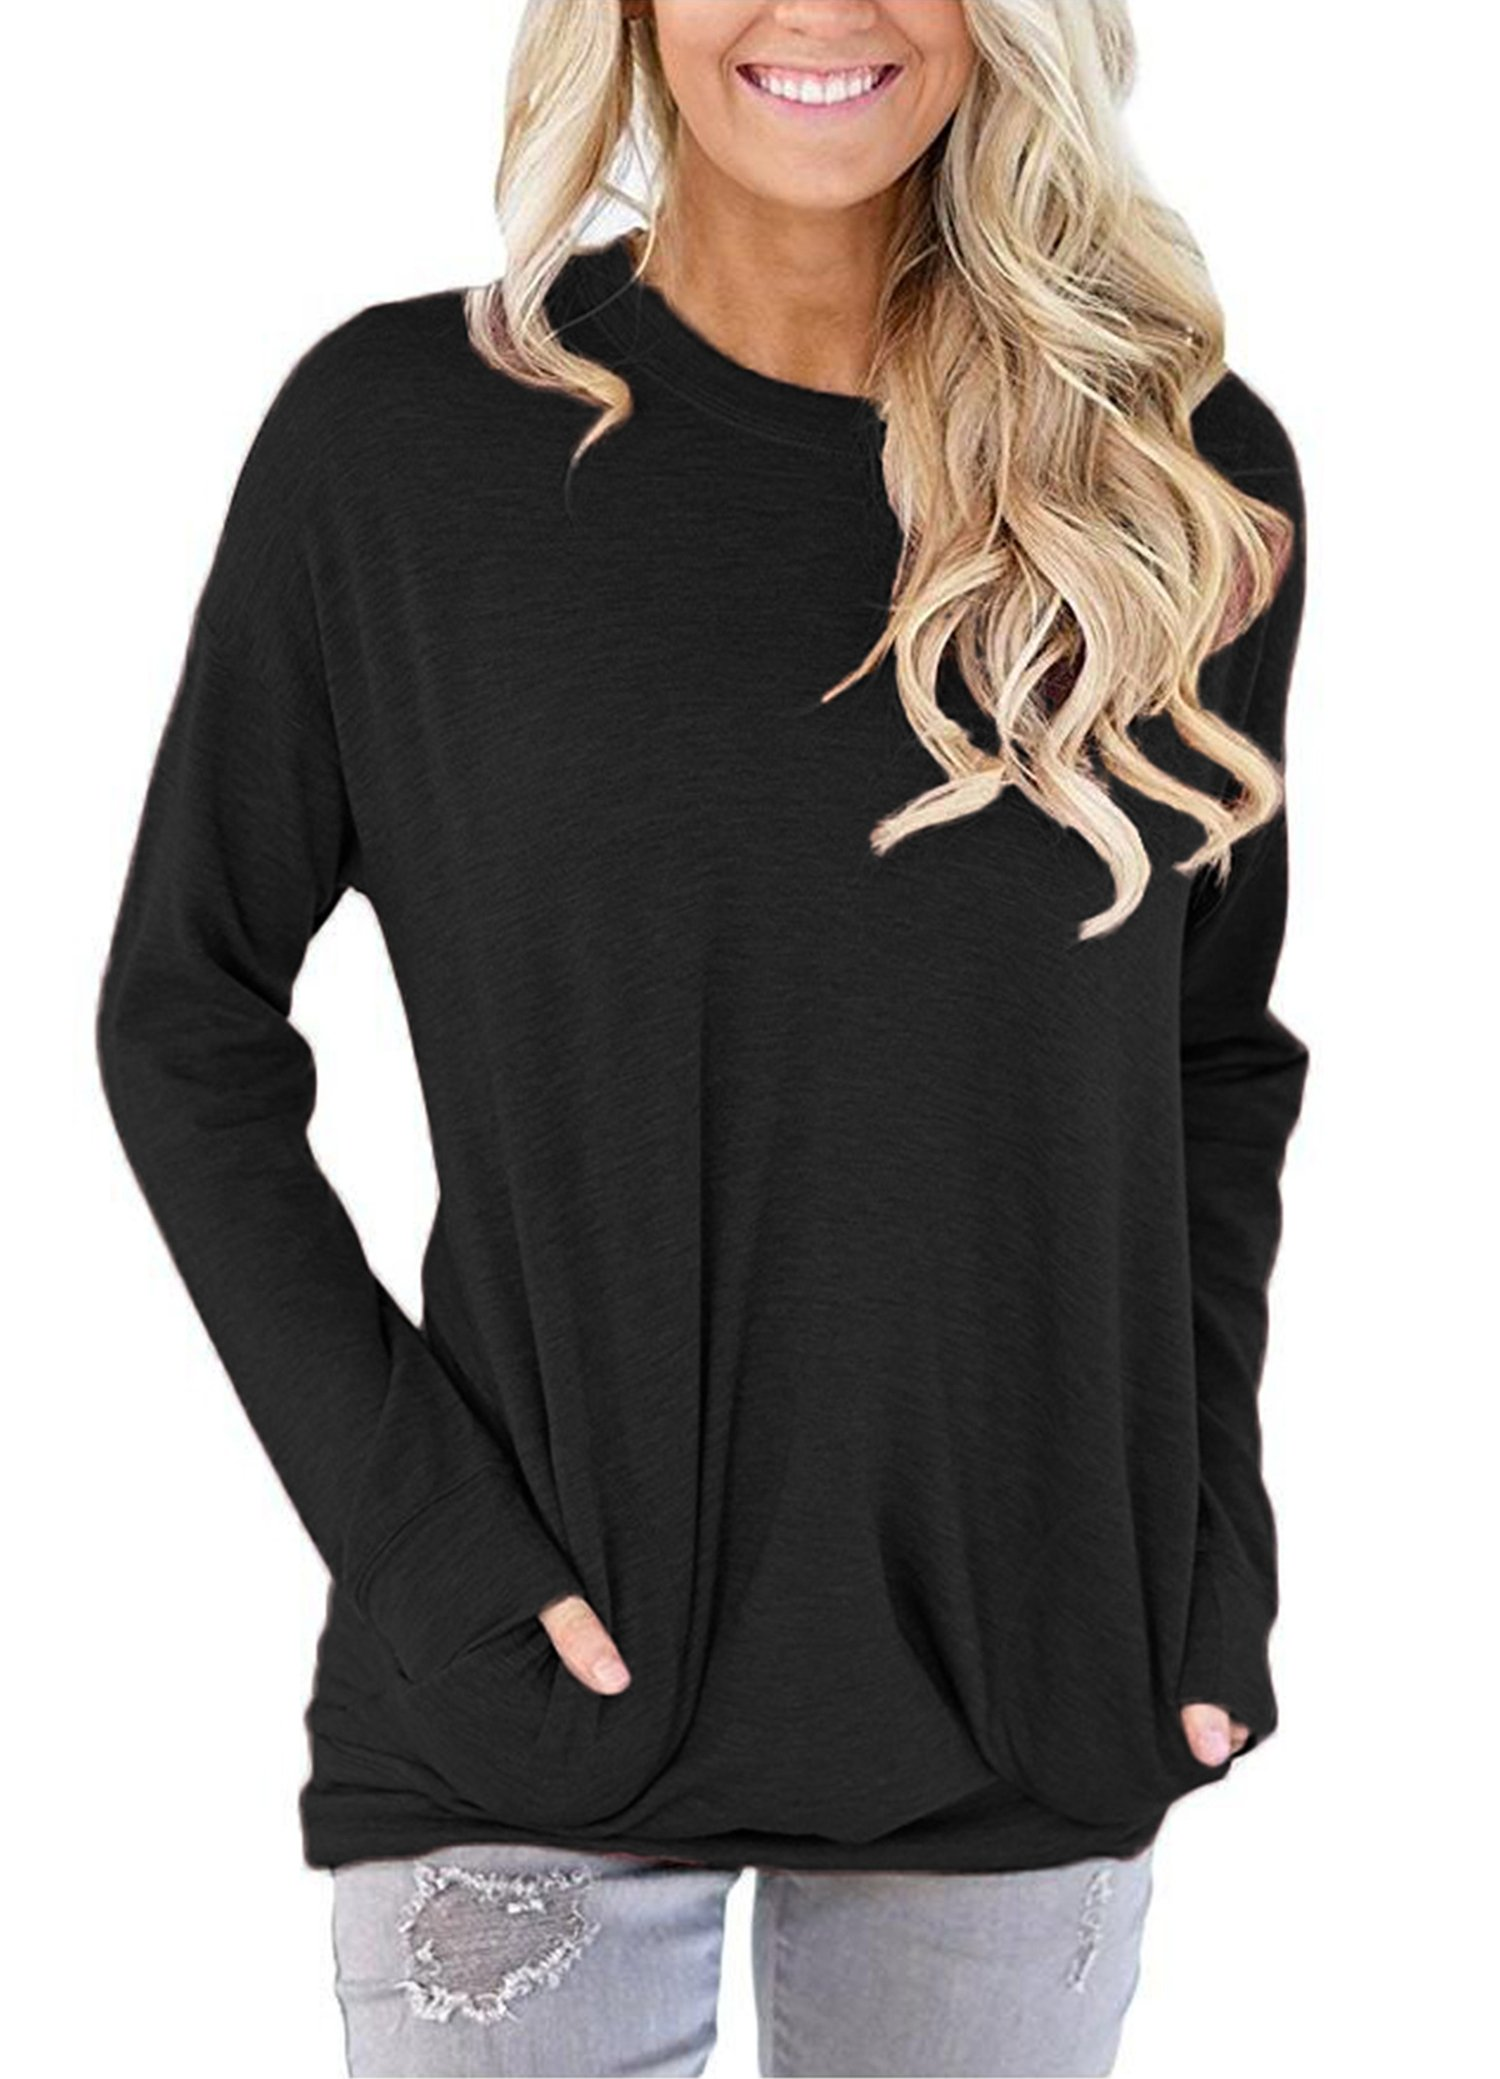 onlypuff Black Casual T-Shirt for Women Long Sleeve Tops Round Neck Solid Color Medium